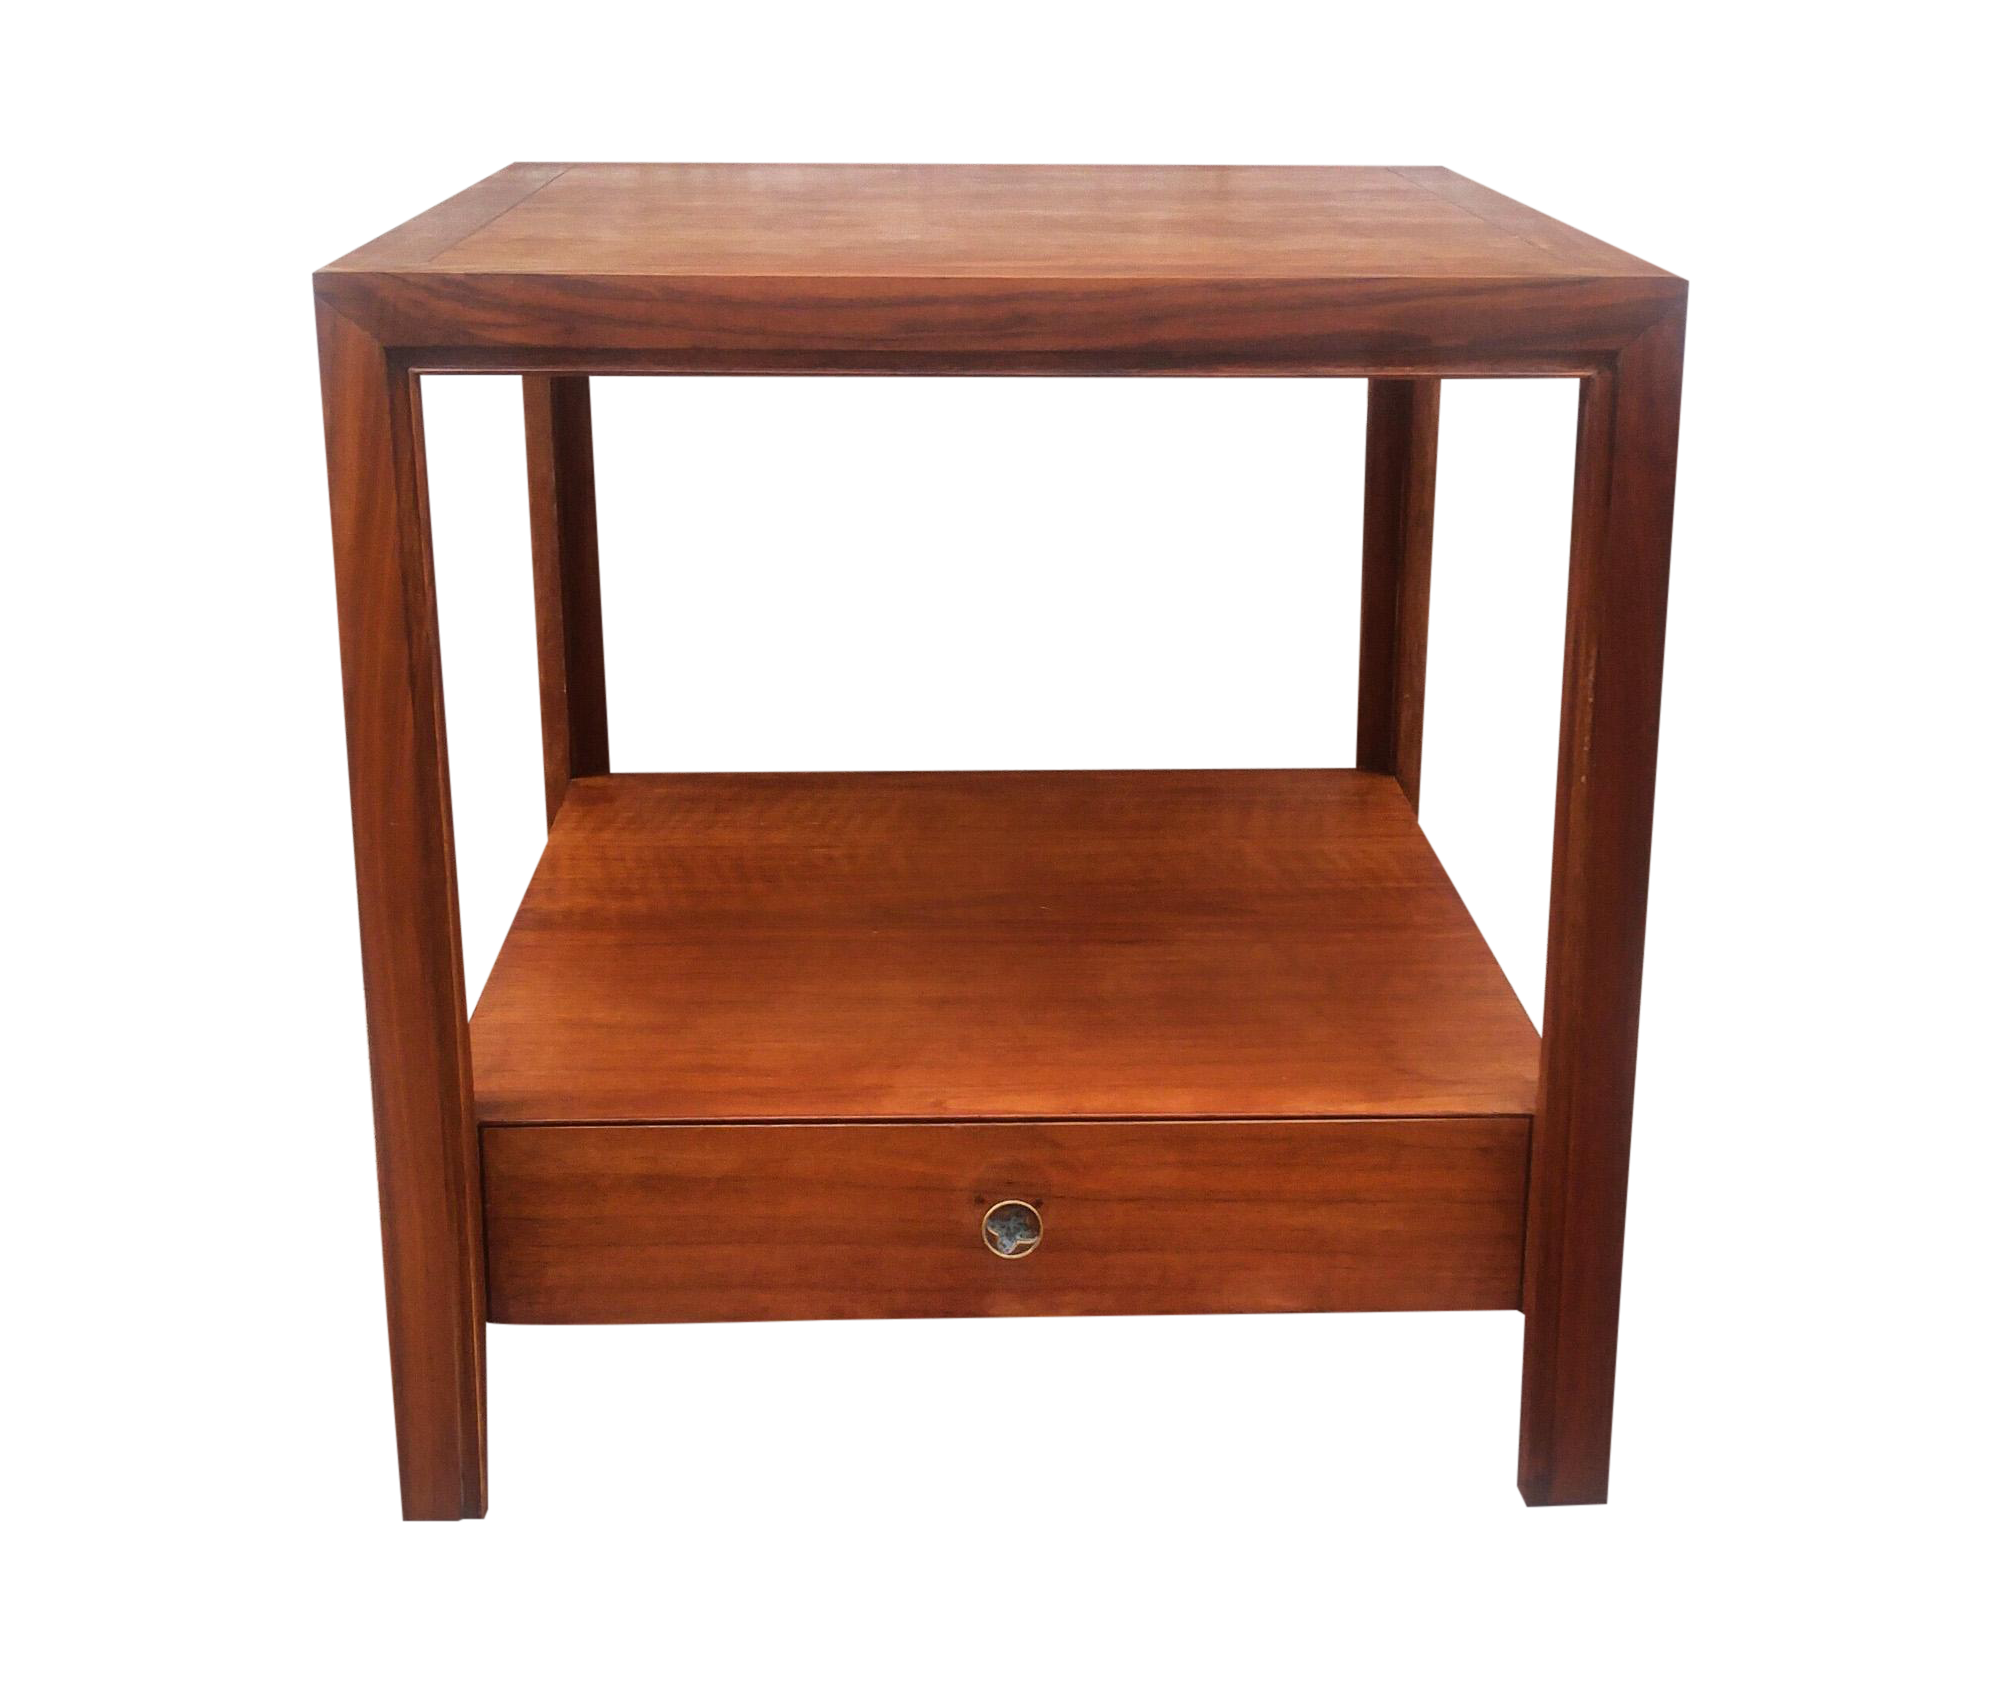 baker furniture vintage walnut end table chairish tables live edge wood shelves platform dark kitchen brown lamps diy redo teak dining accent marble top nesting french farmhouse